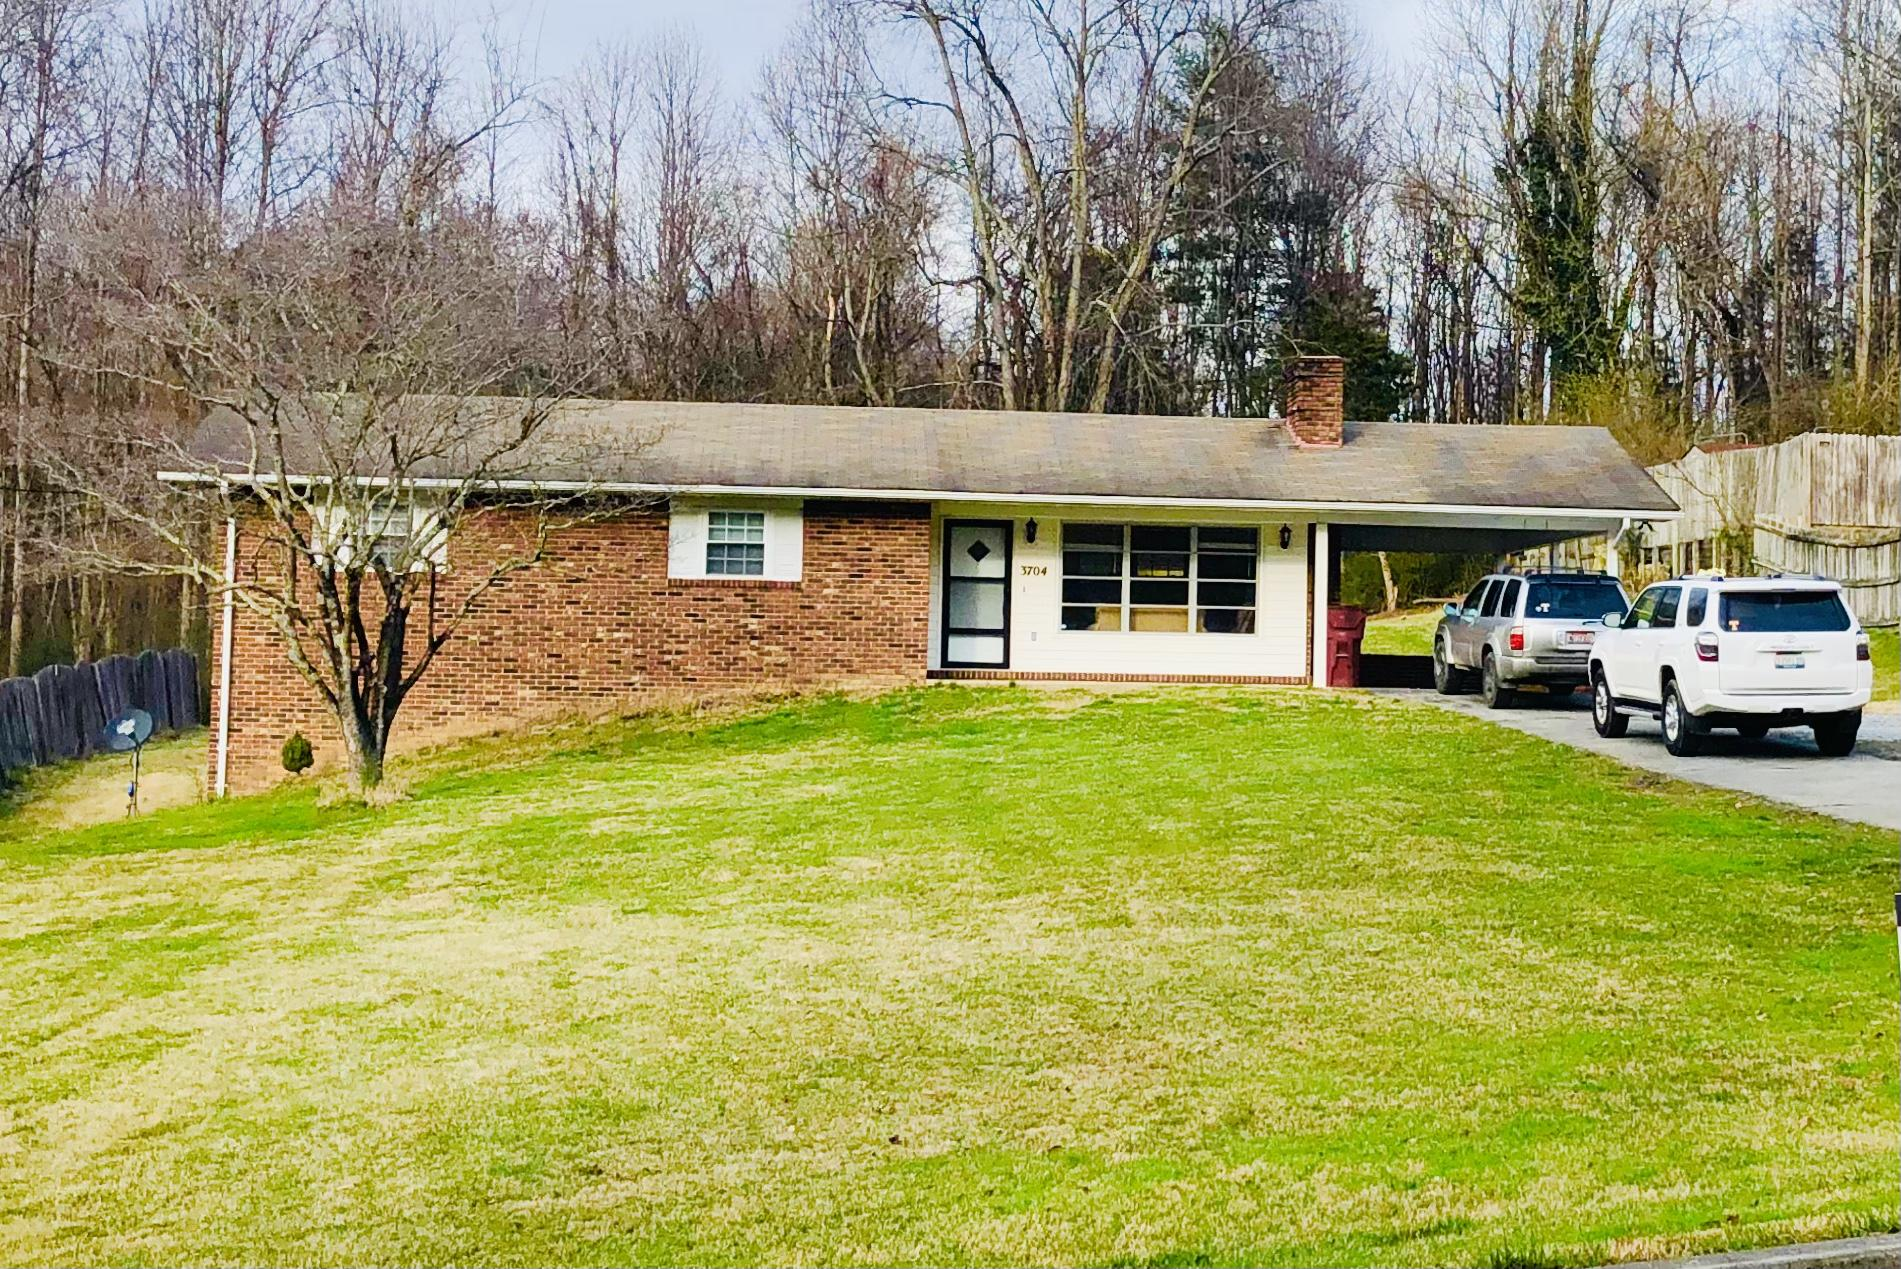 3704 Timberlake Road, Johnson City, Tennessee 37601, 3 Bedrooms Bedrooms, ,2 BathroomsBathrooms,Single Family,For Sale,3704 Timberlake Road,9919736